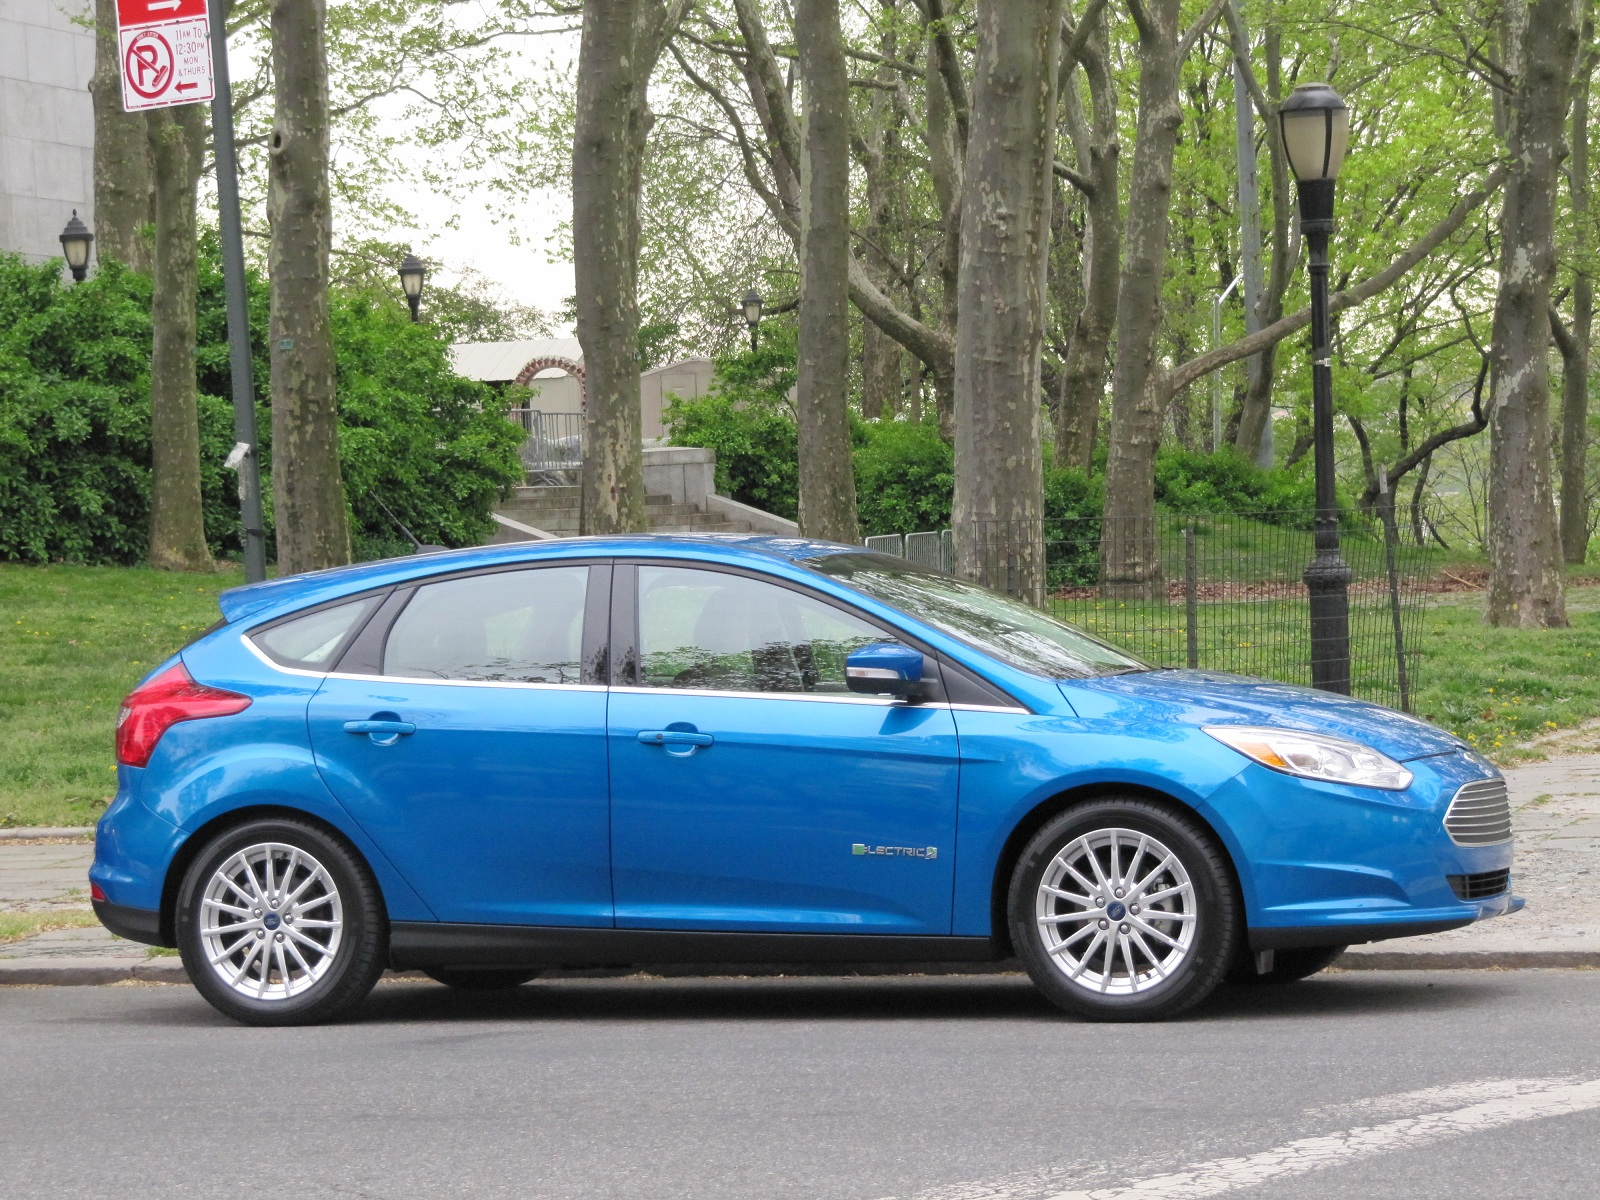 2012 Ford Focus Electric Here s What Dealers Have To Do To Sell It